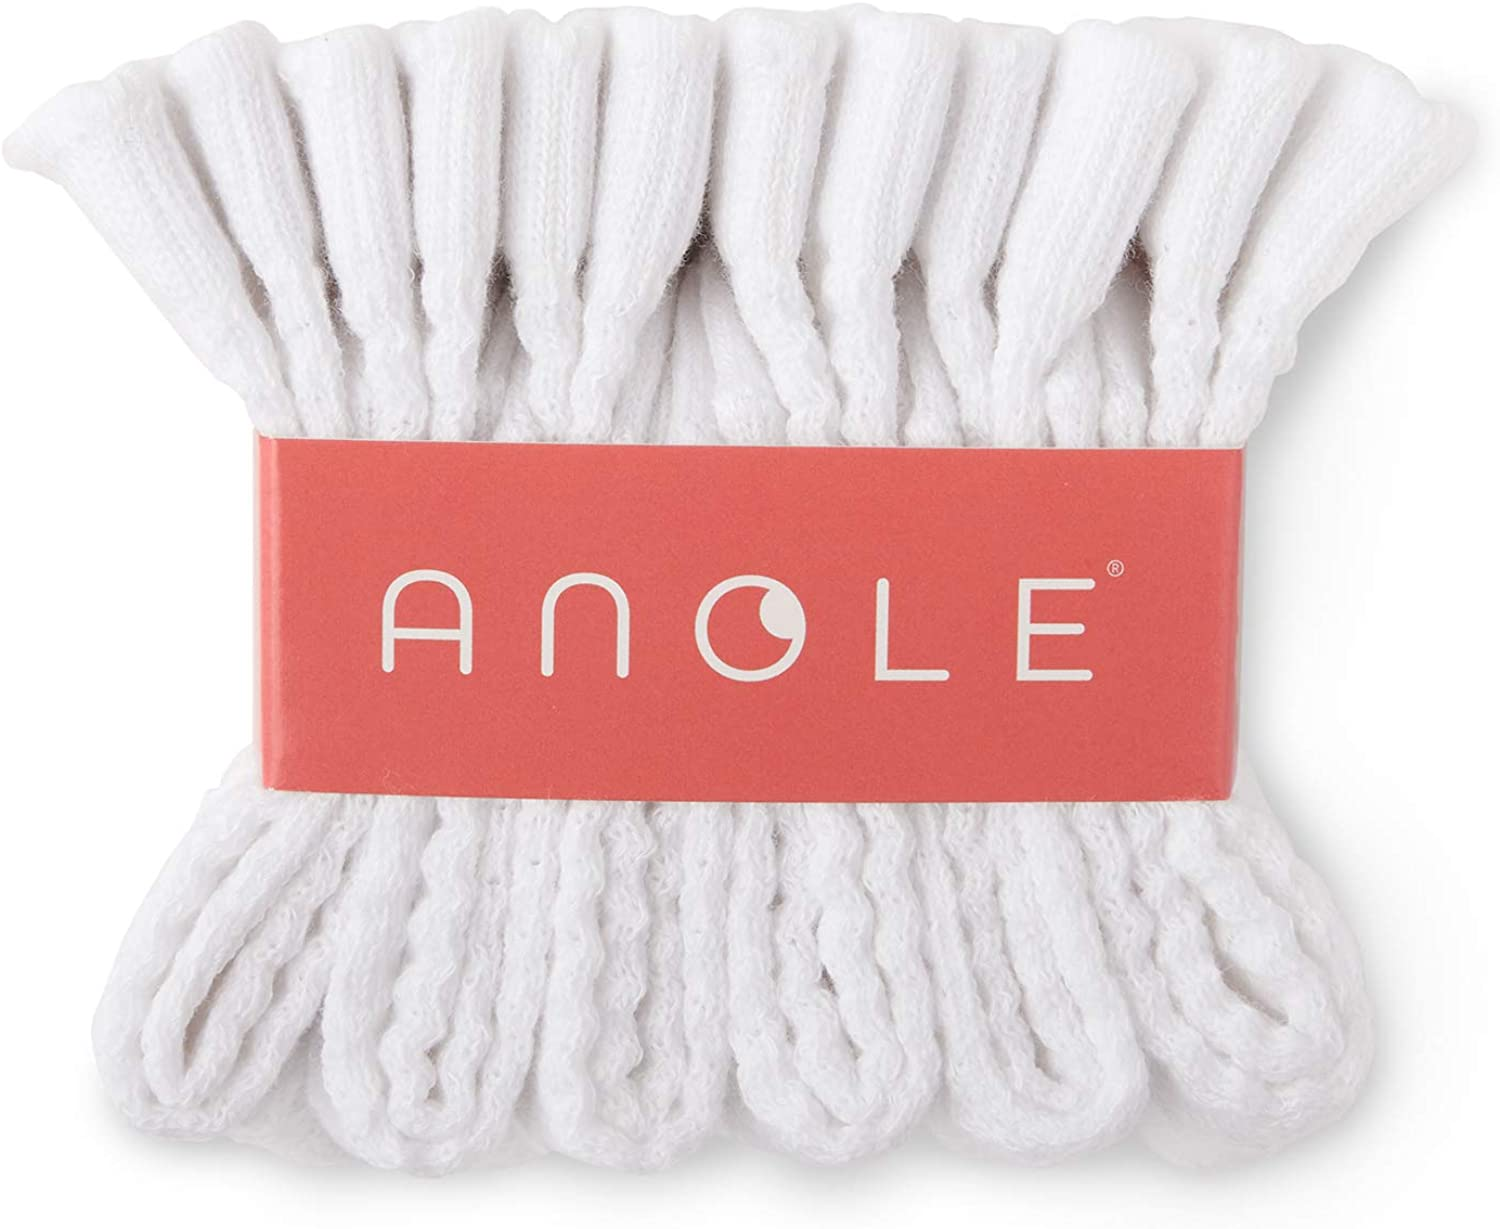 Cozy Warm Winter Socks 6 Pairs Knee High Girls Cable Knit Stockings Anole Newborn /& Infant Baby Socks